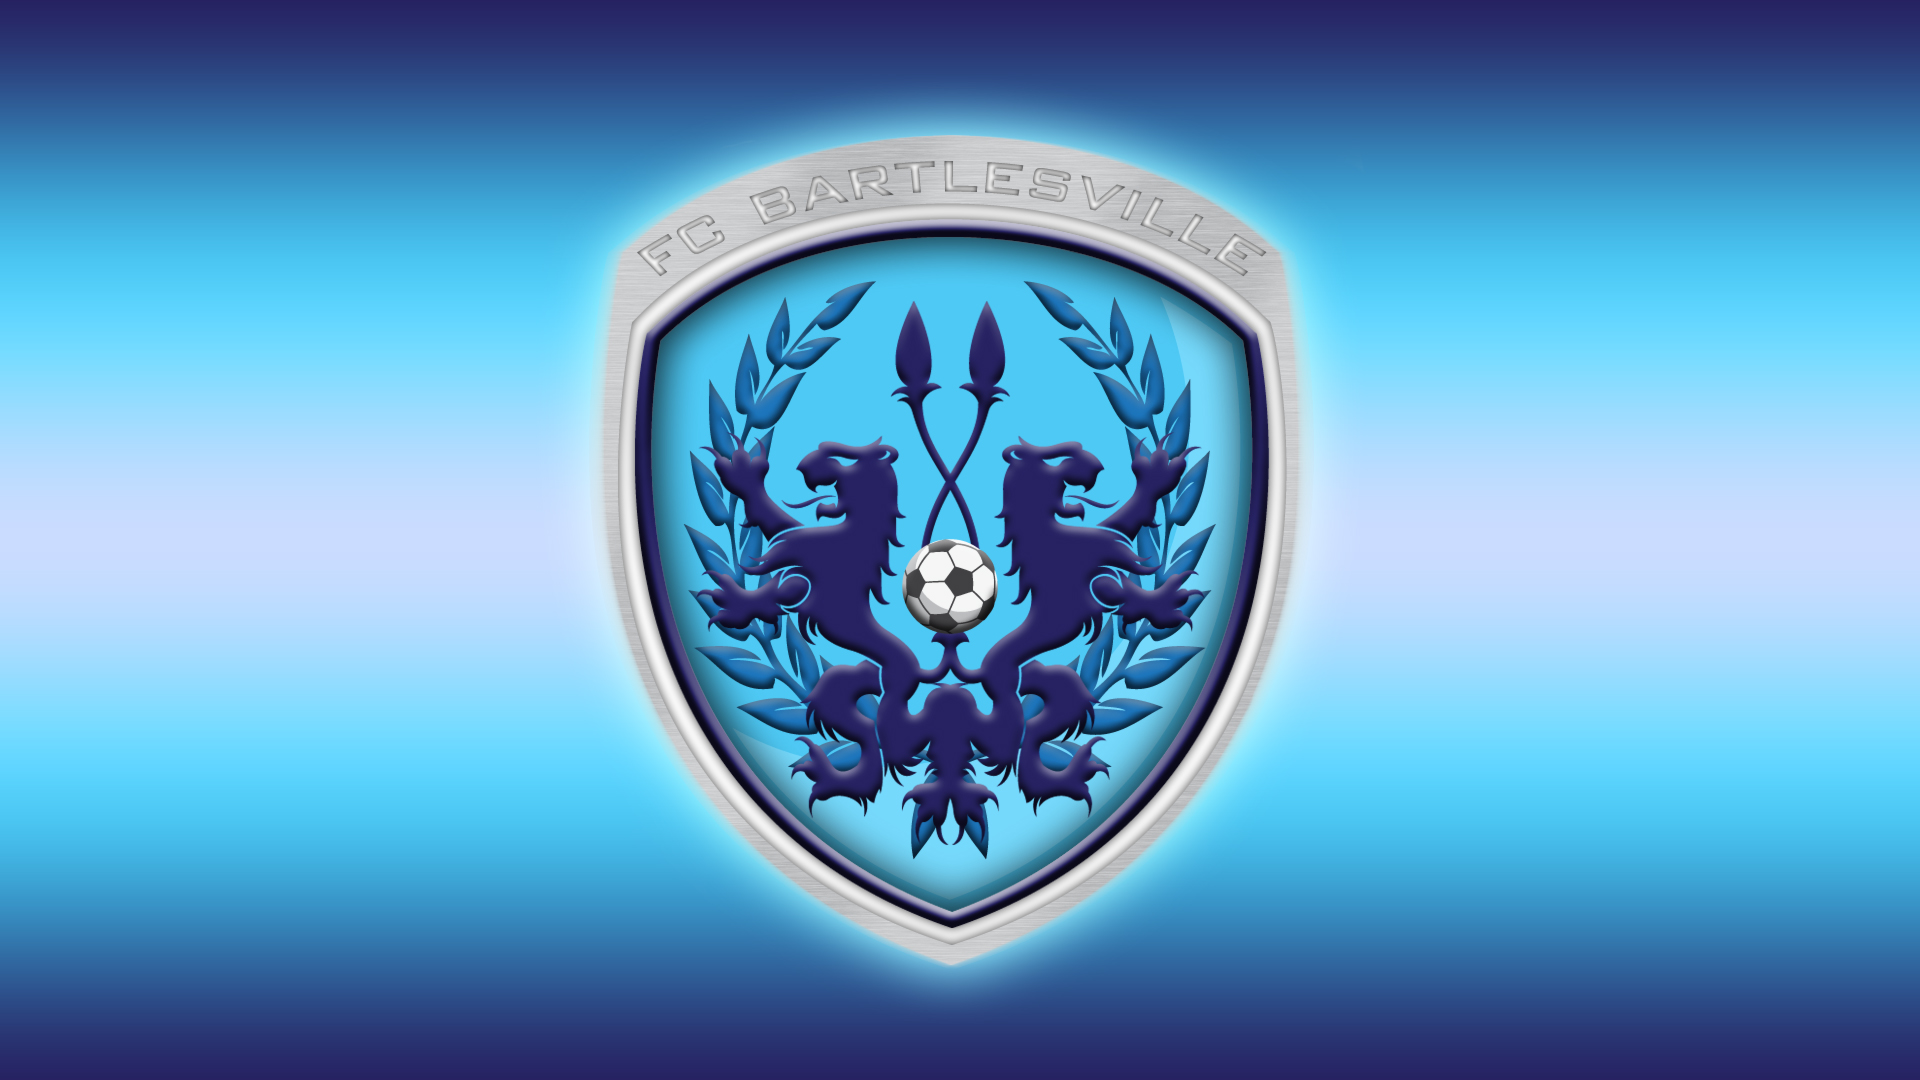 FC Bartlesville Wallpaper 2